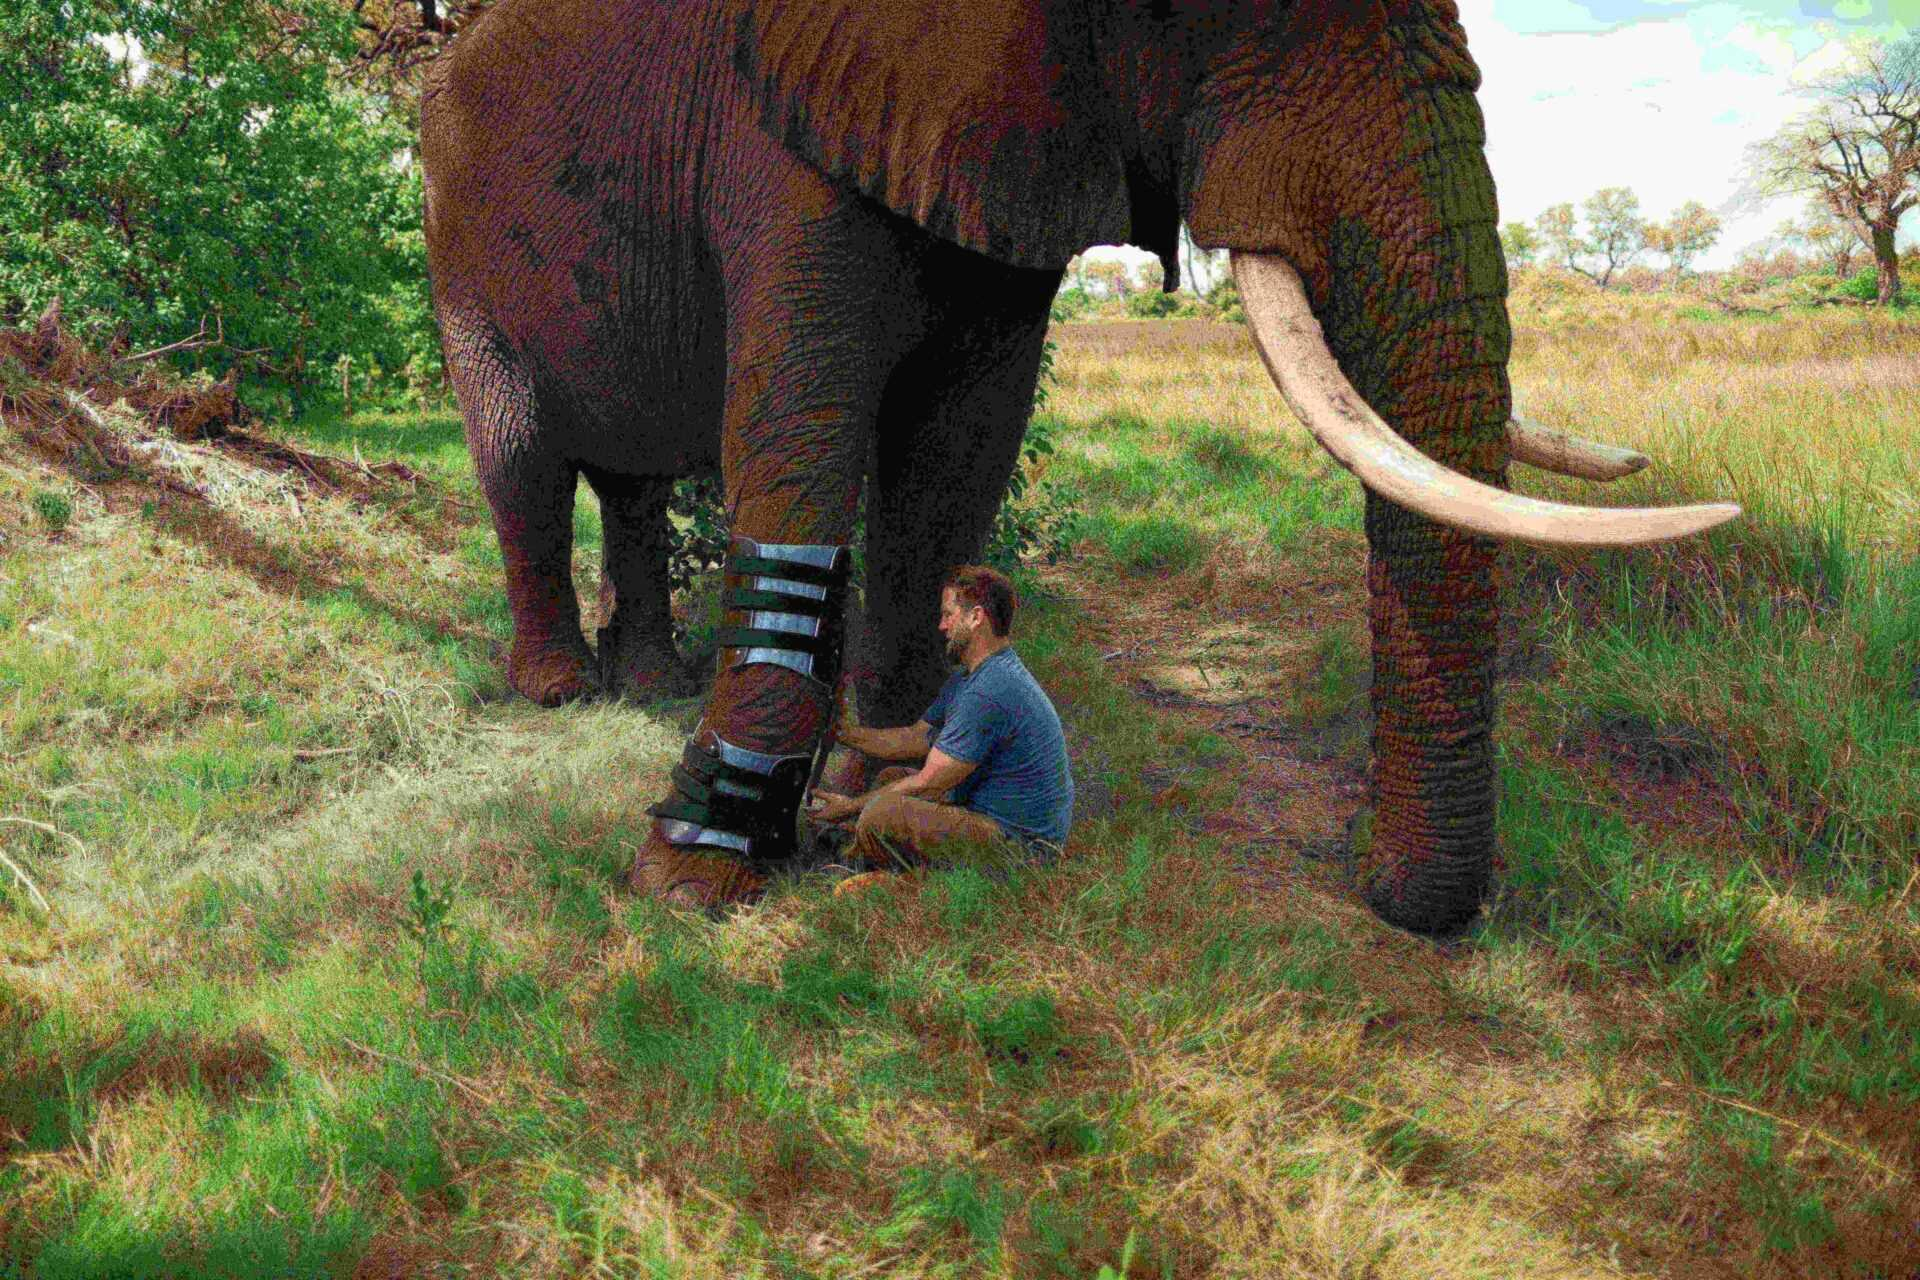 Derrick putting on Jabu's (elephant's) prosthetic.